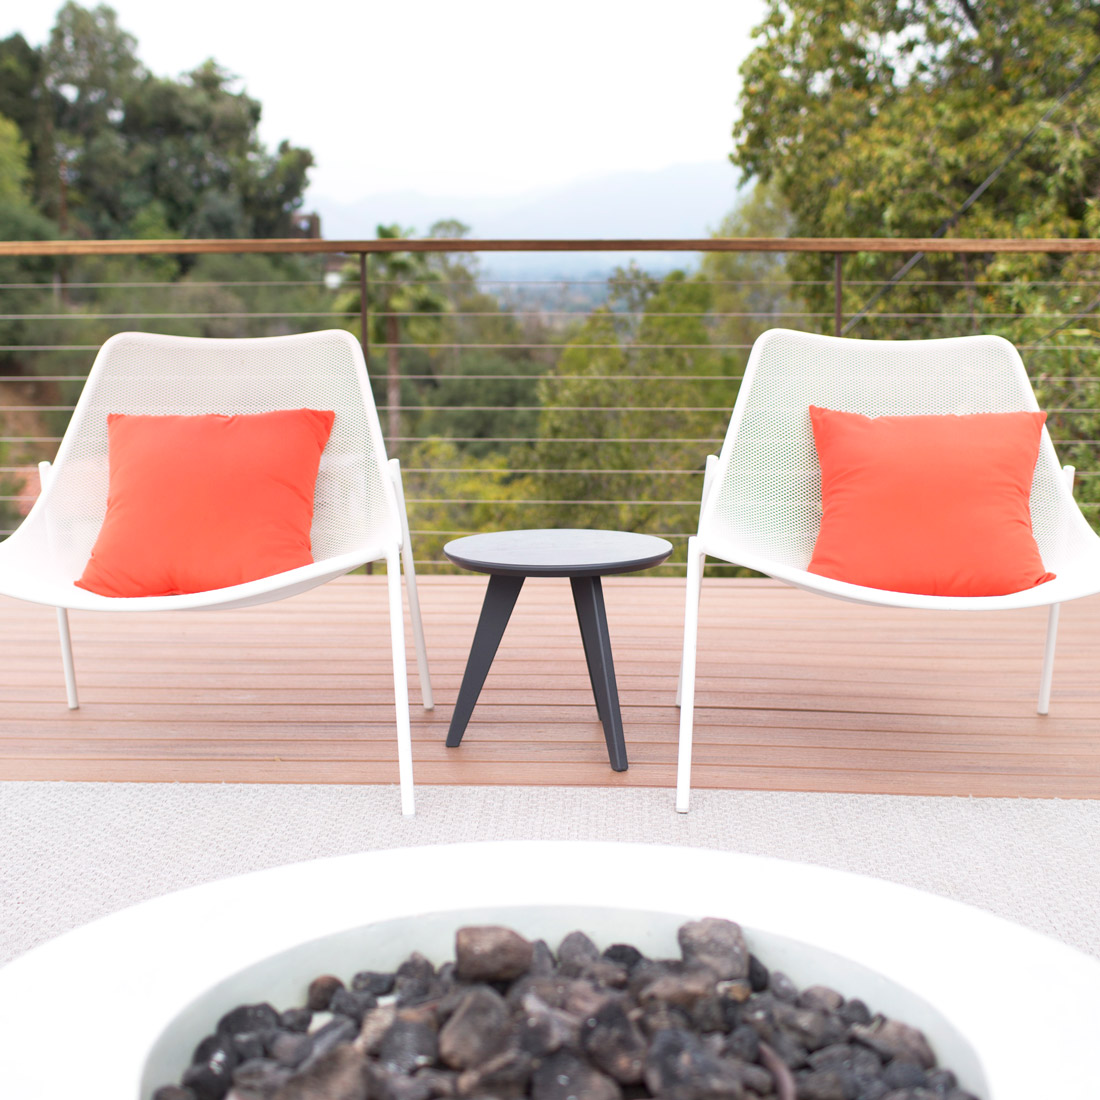 roof top patio with modern mesh white chairs and orange pillows in front of a gas fireplace with concrete surround design by sara bates interior design